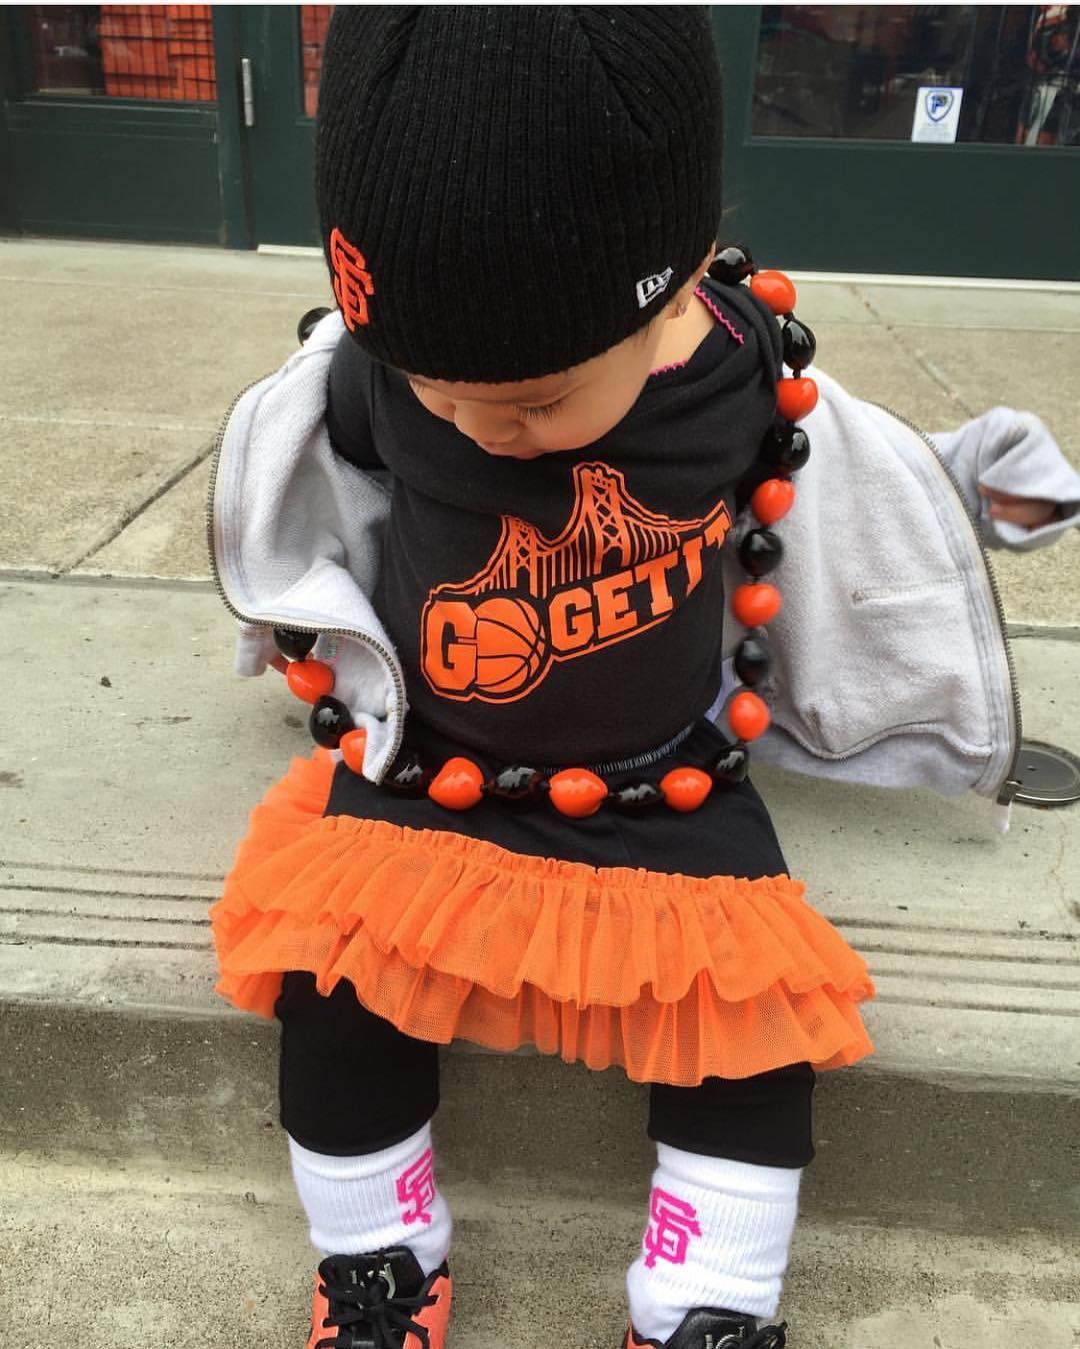 <div class='meta'><div class='origin-logo' data-origin='none'></div><span class='caption-text' data-credit='Photo submitted to KGO-TV by Guskatt1982/Instagram'>ABC7 viewers are showing off their San Francisco Giants pride. Share your pics by tagging #abc7now!</span></div>